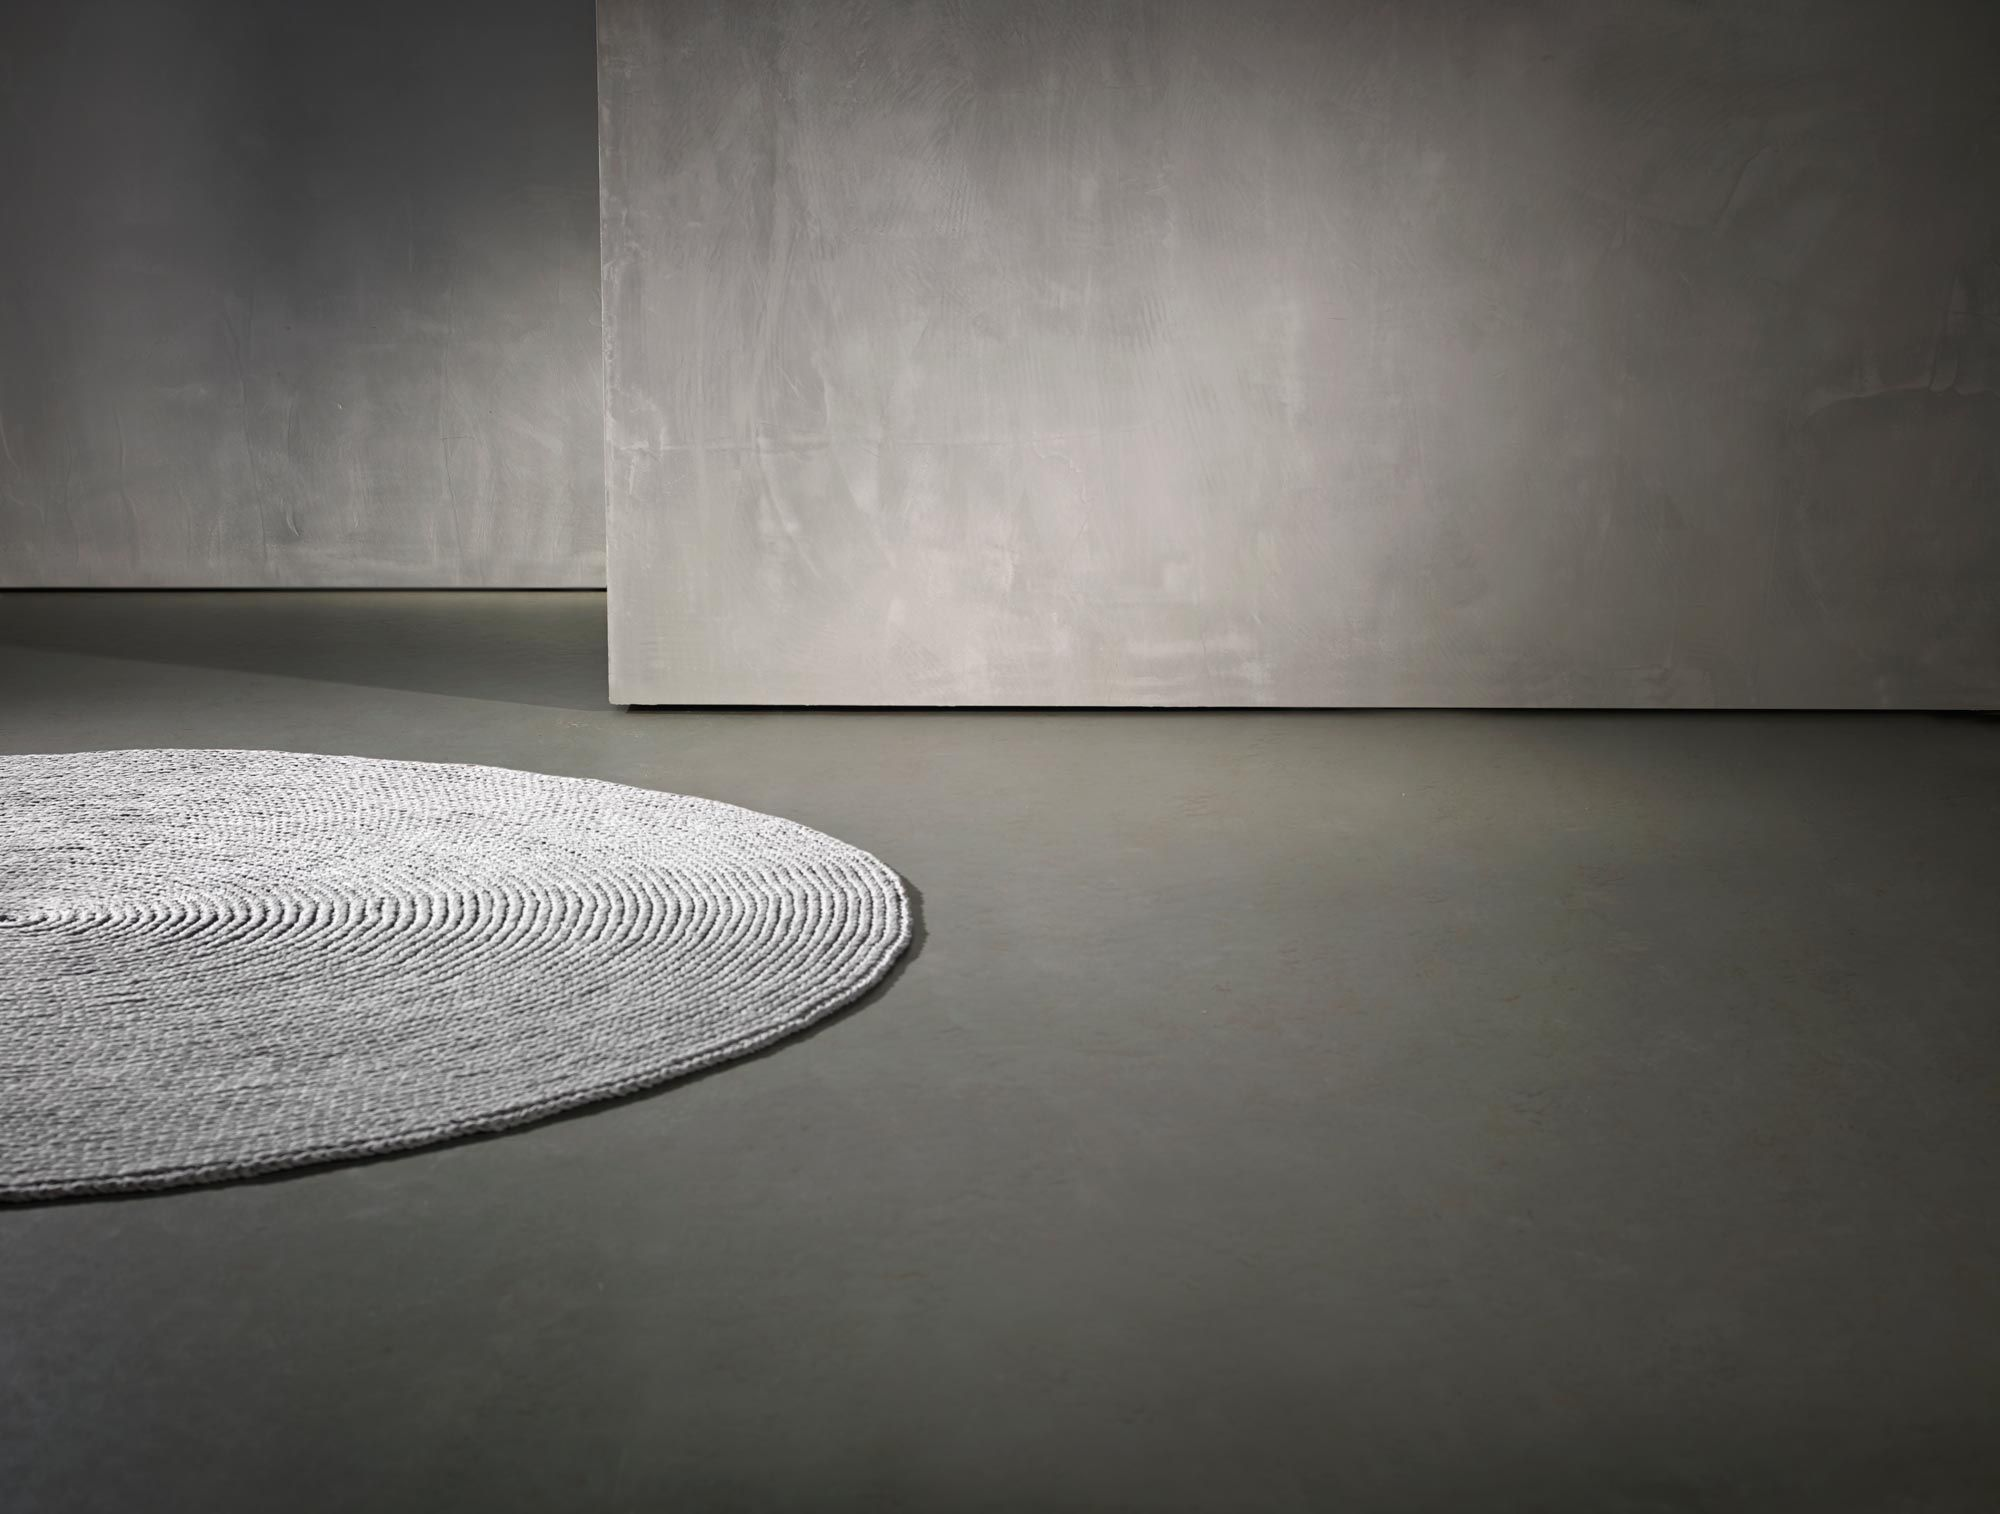 Marmoleum selected by piet boon piet boon04 color gray argent